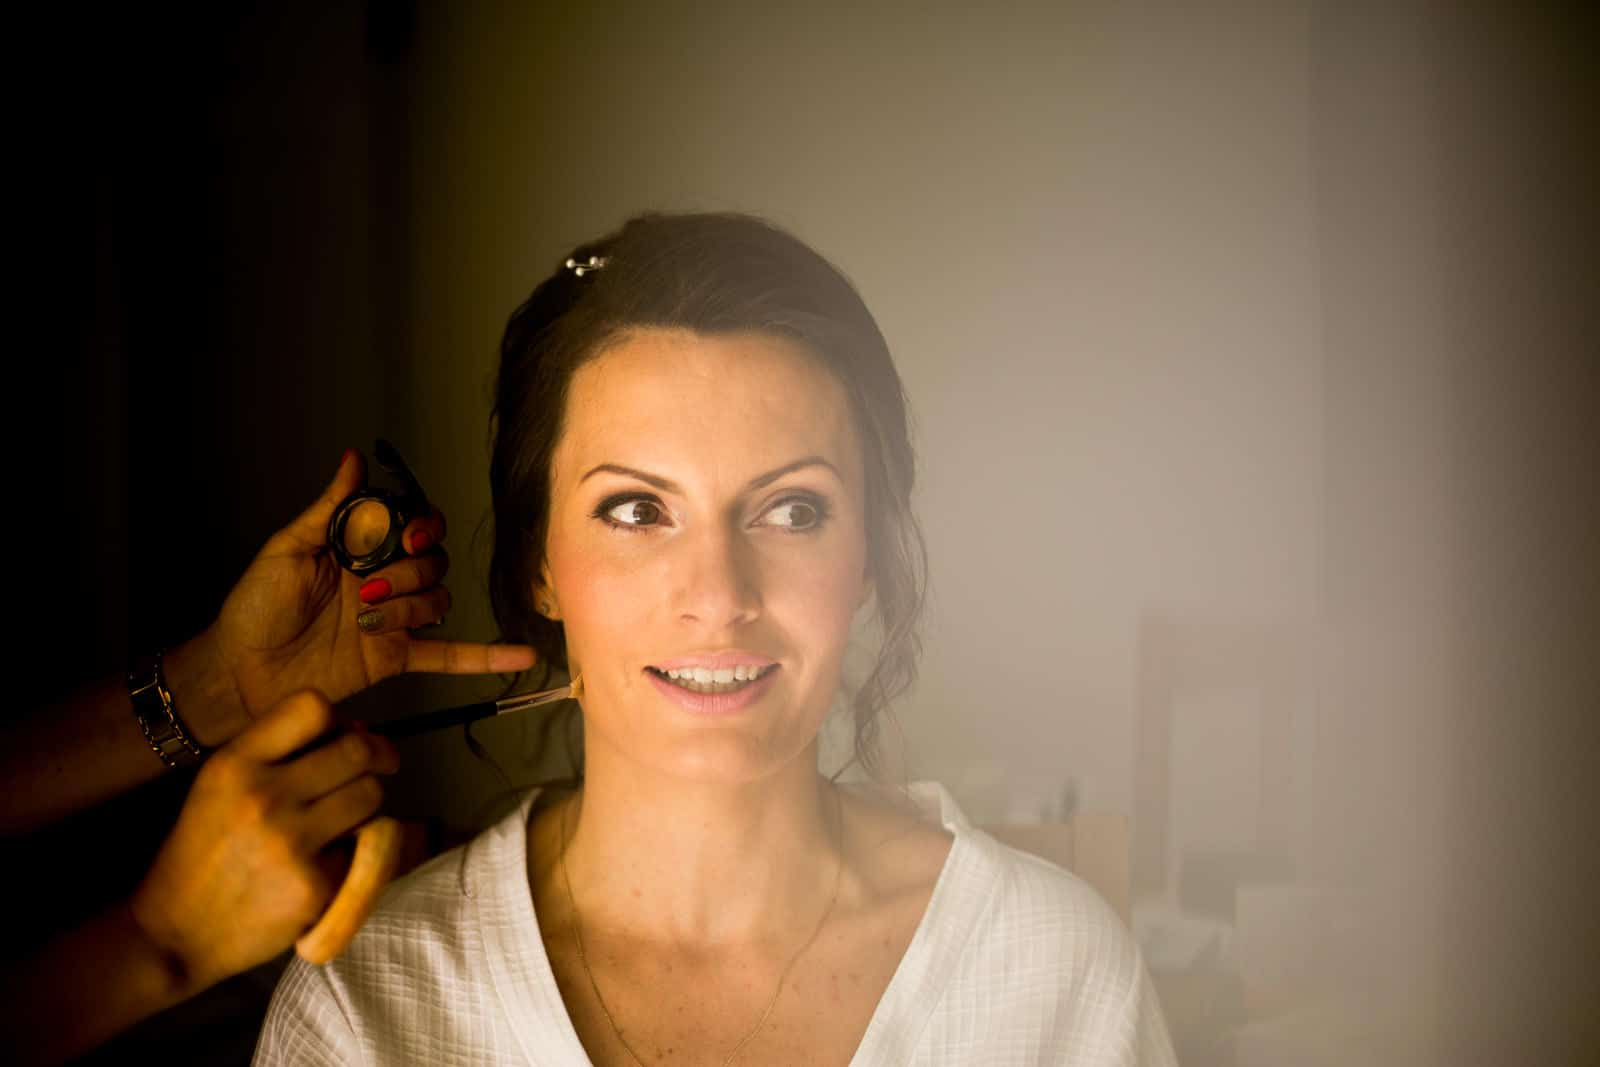 Bride getting ready in the morning hsving her make up applied